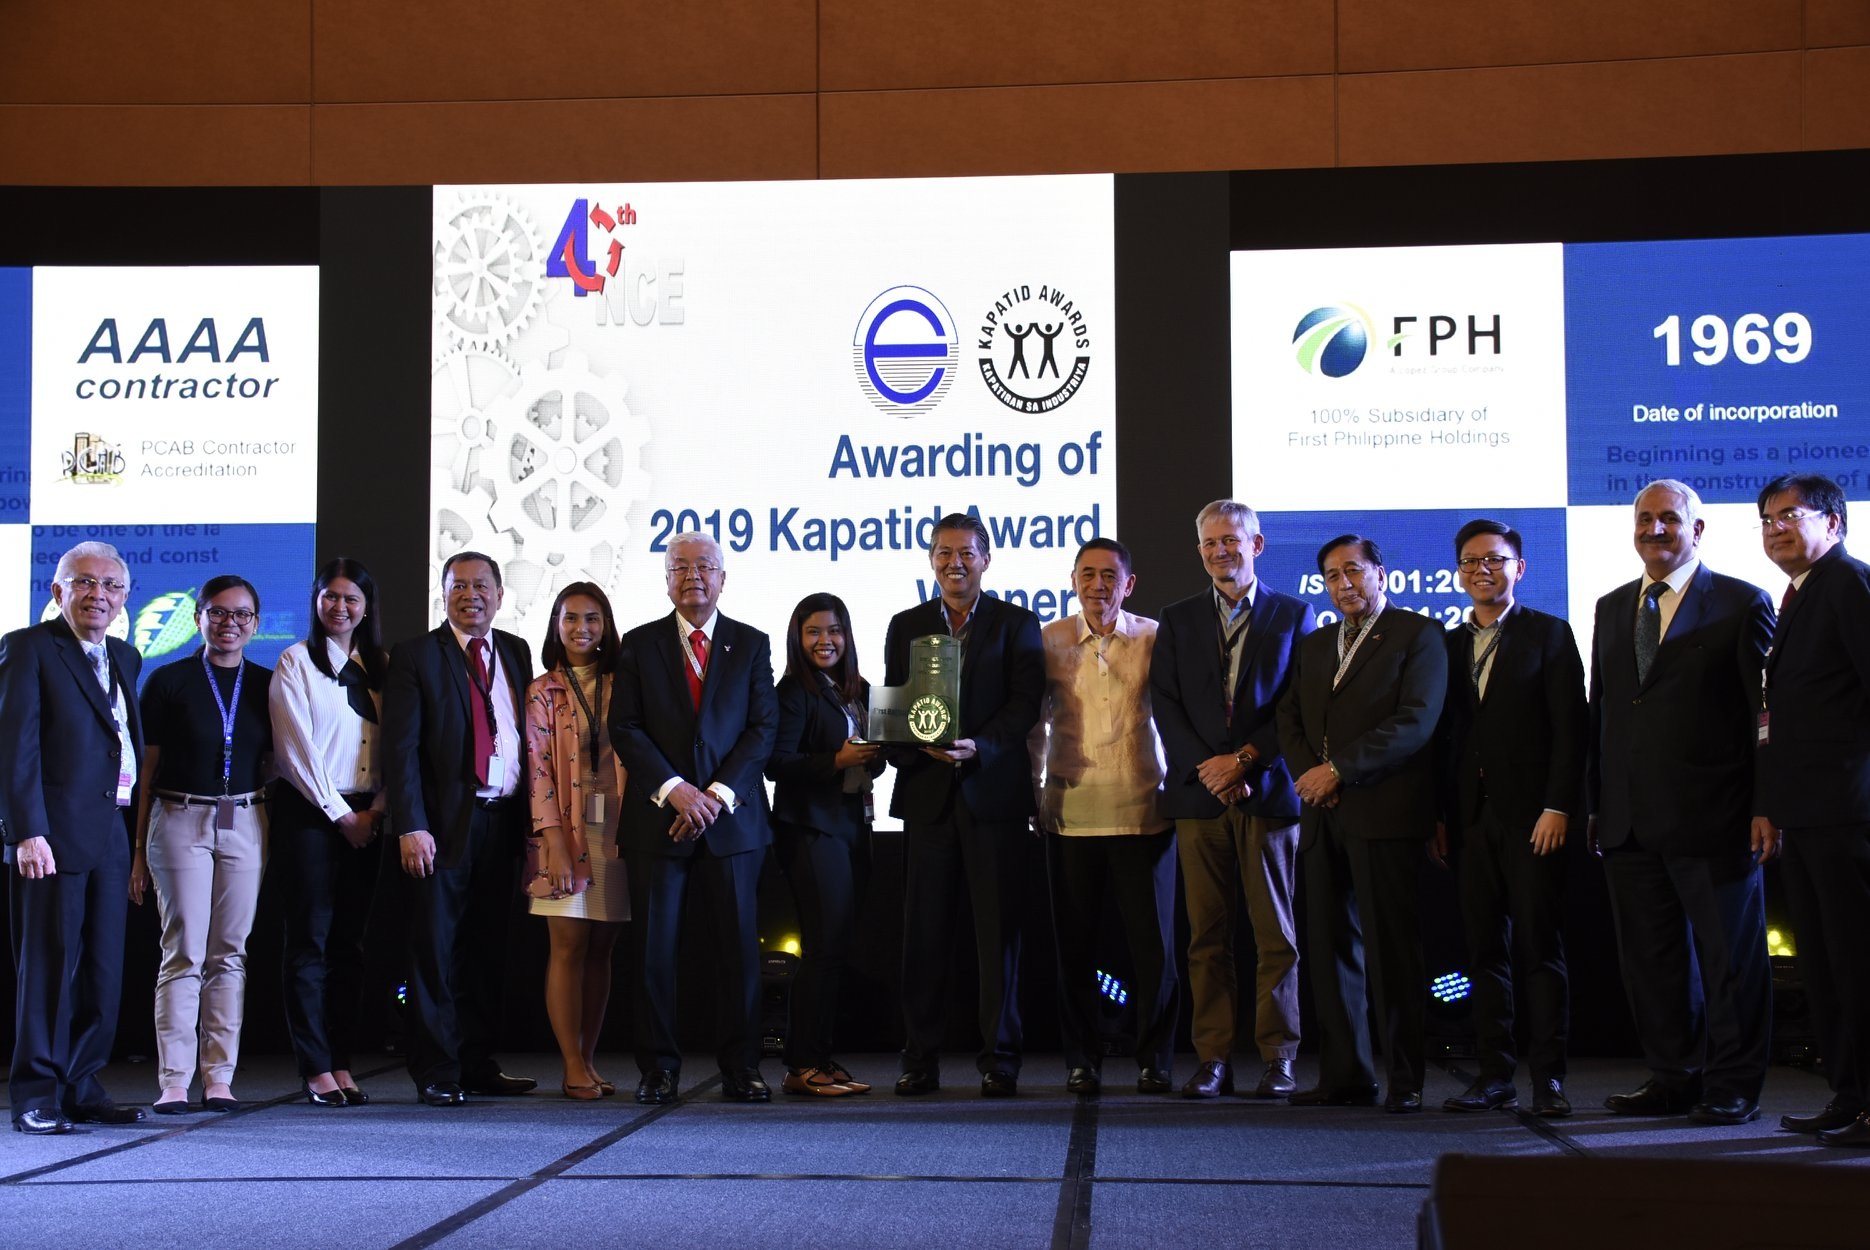 The First Balfour team, led by HR and administration head Carlos Salonga (8th from left), receives the award from ECOP officials